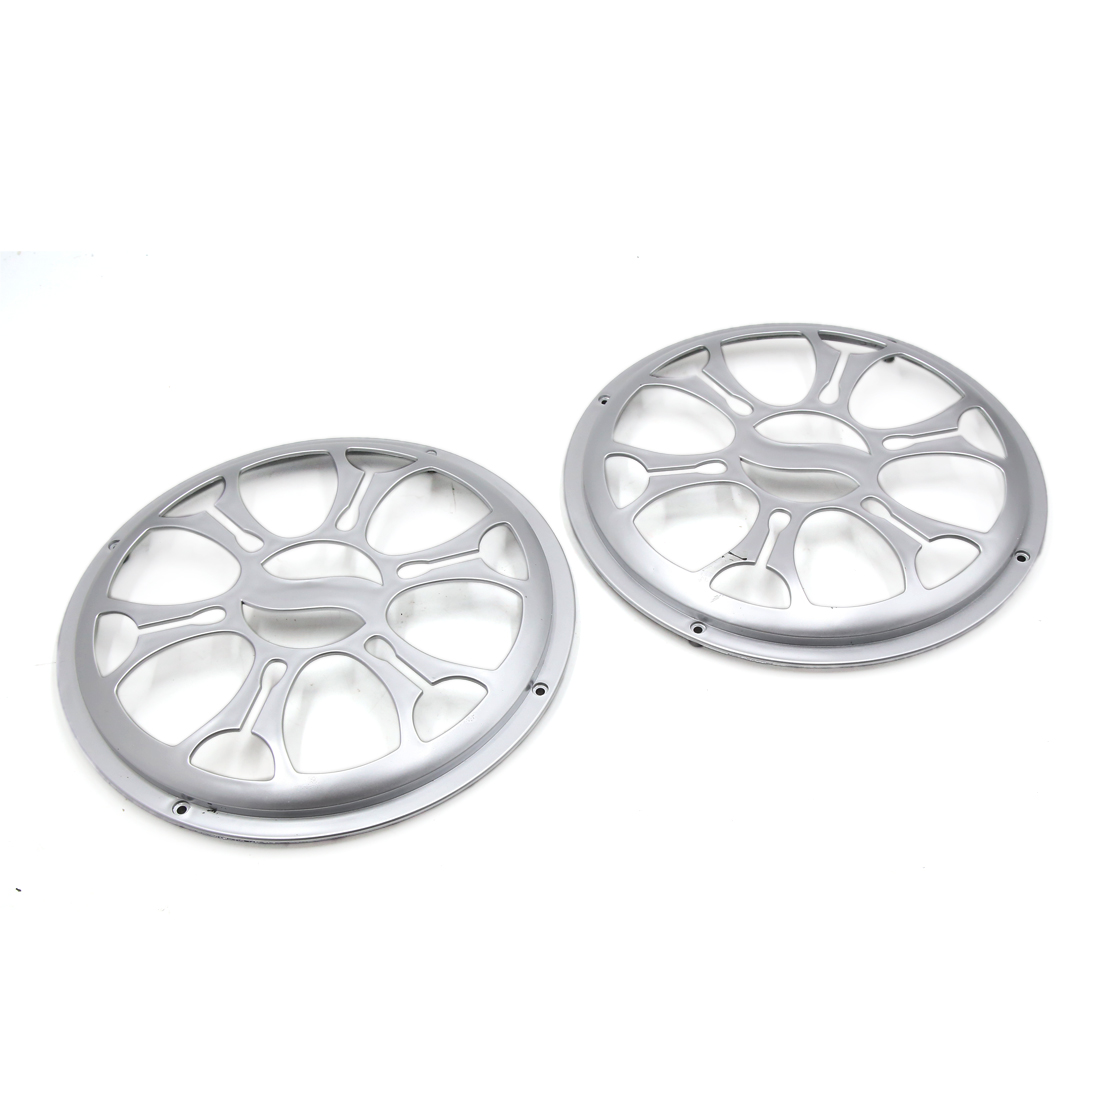 "2 Pcs 10"" Dia Silver Tone Plastic Audio Speaker Subwoofer Dust Cover Protector for Auto Car"